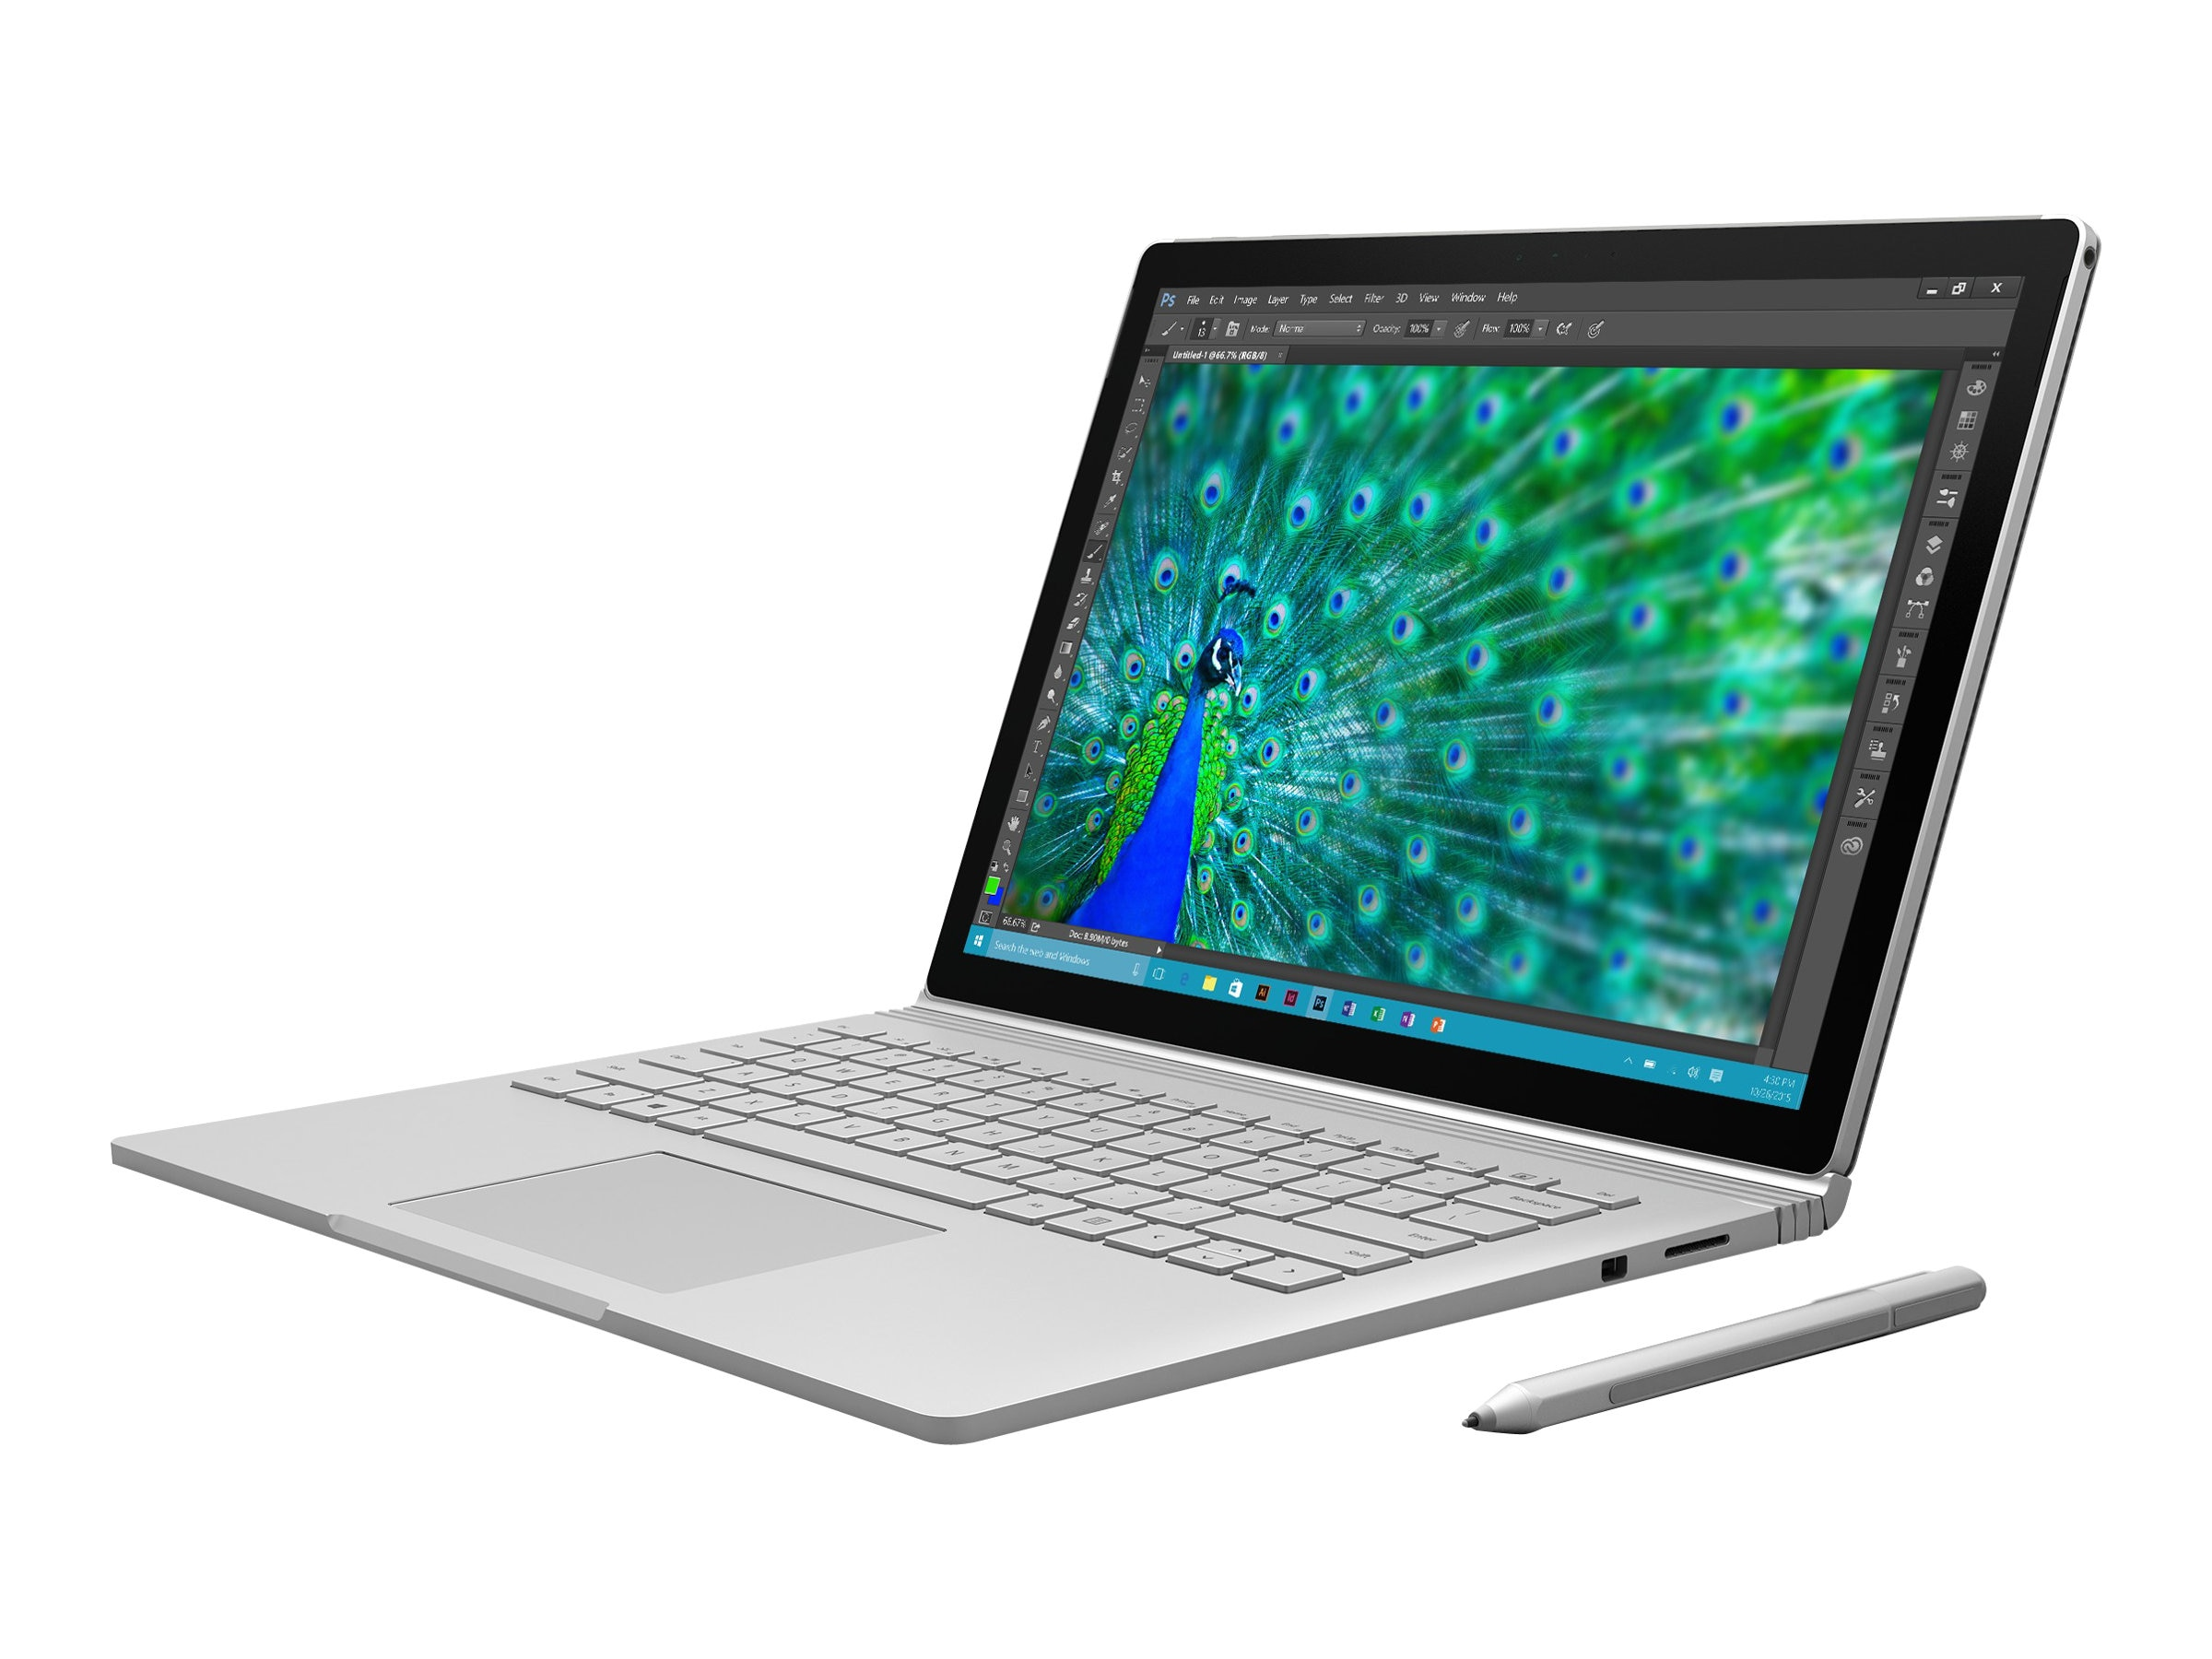 Microsoft Surface Book Core i7 dGPU 16GB 1TB, 2YN-00001, 31659553, Notebooks - Convertible